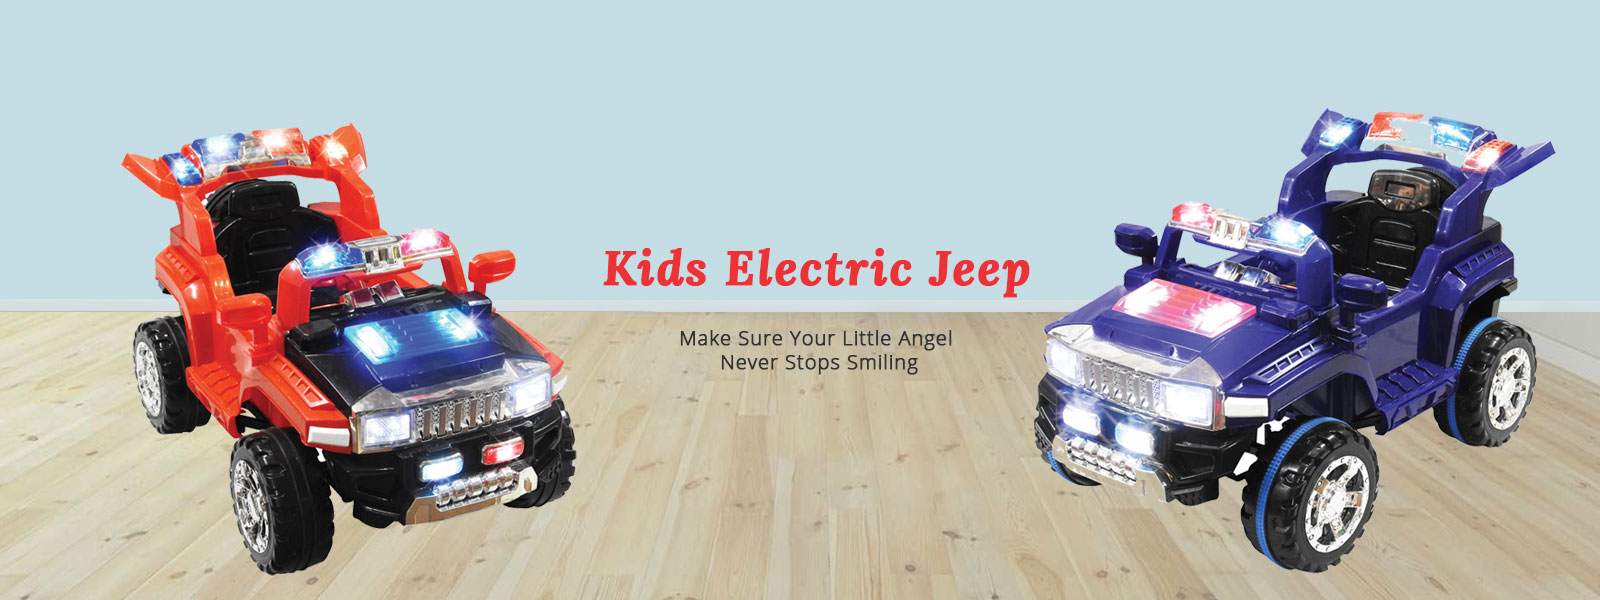 Kids Electric Jeep Manufacturers in Rajkot